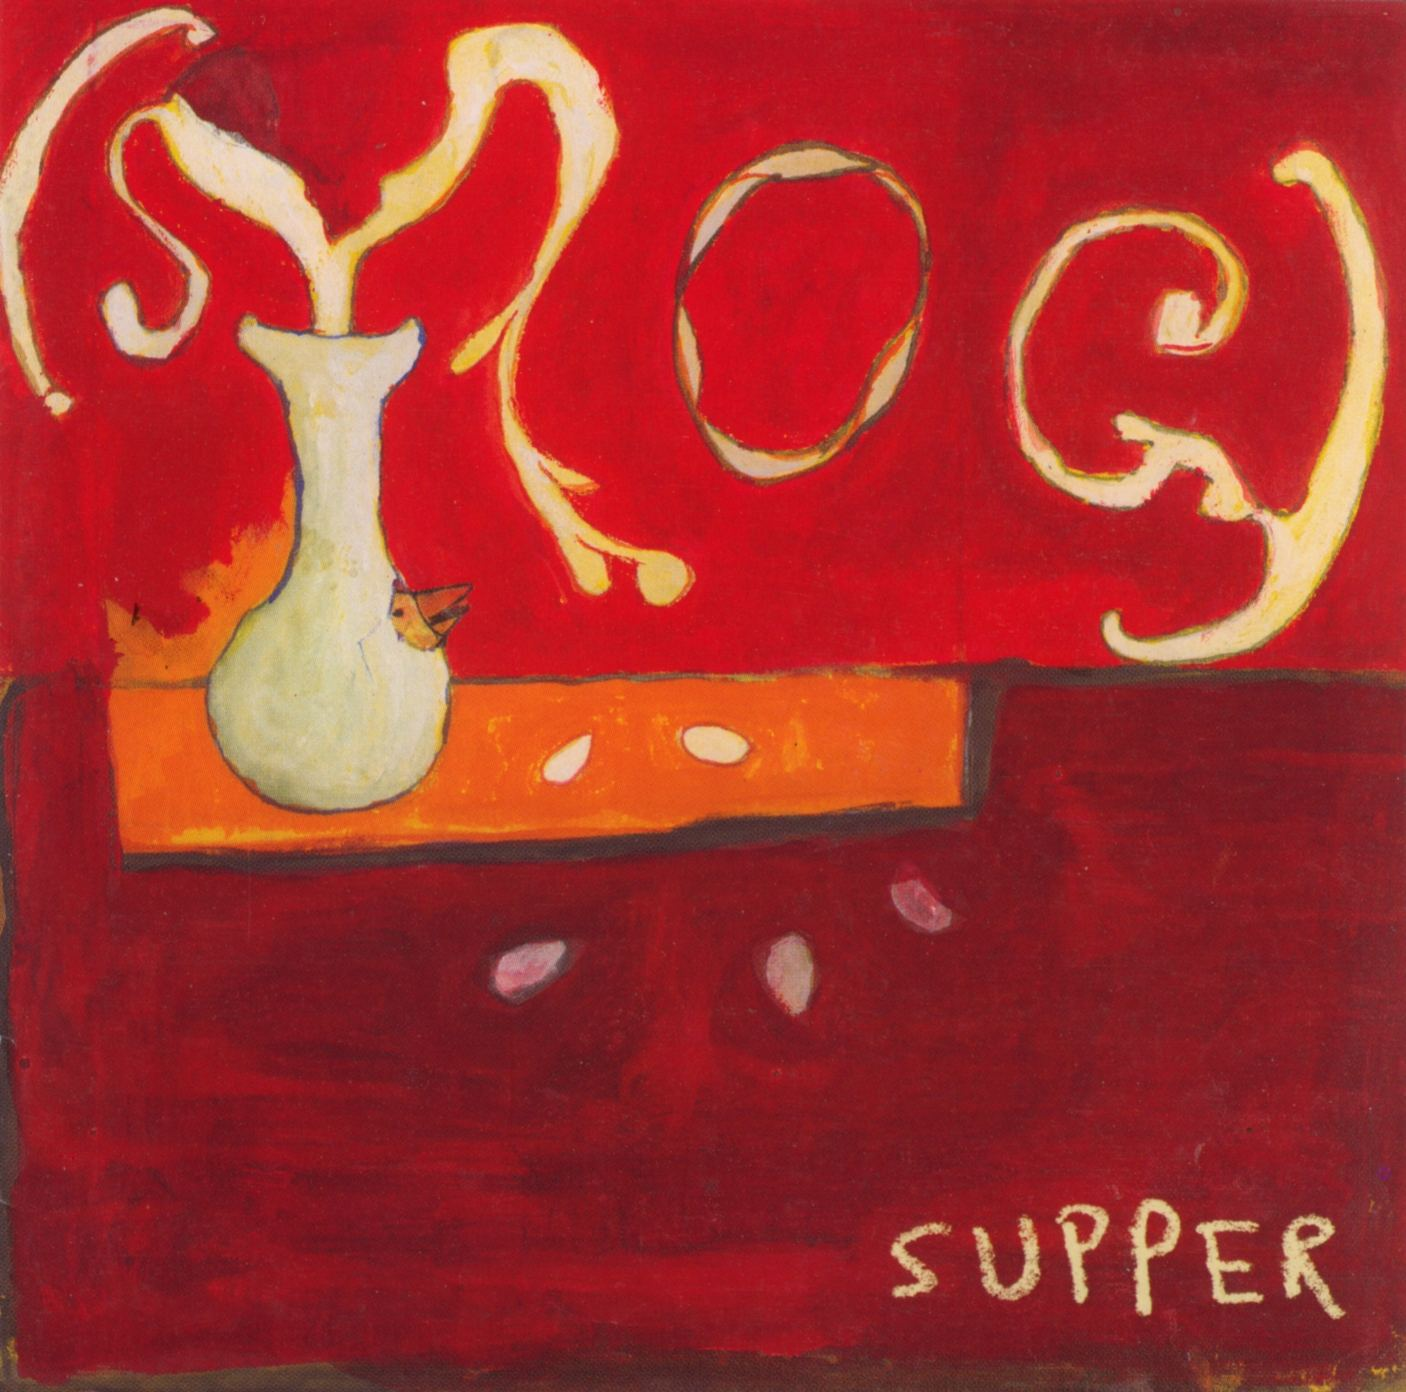 Recommending: Supper by (Smog)